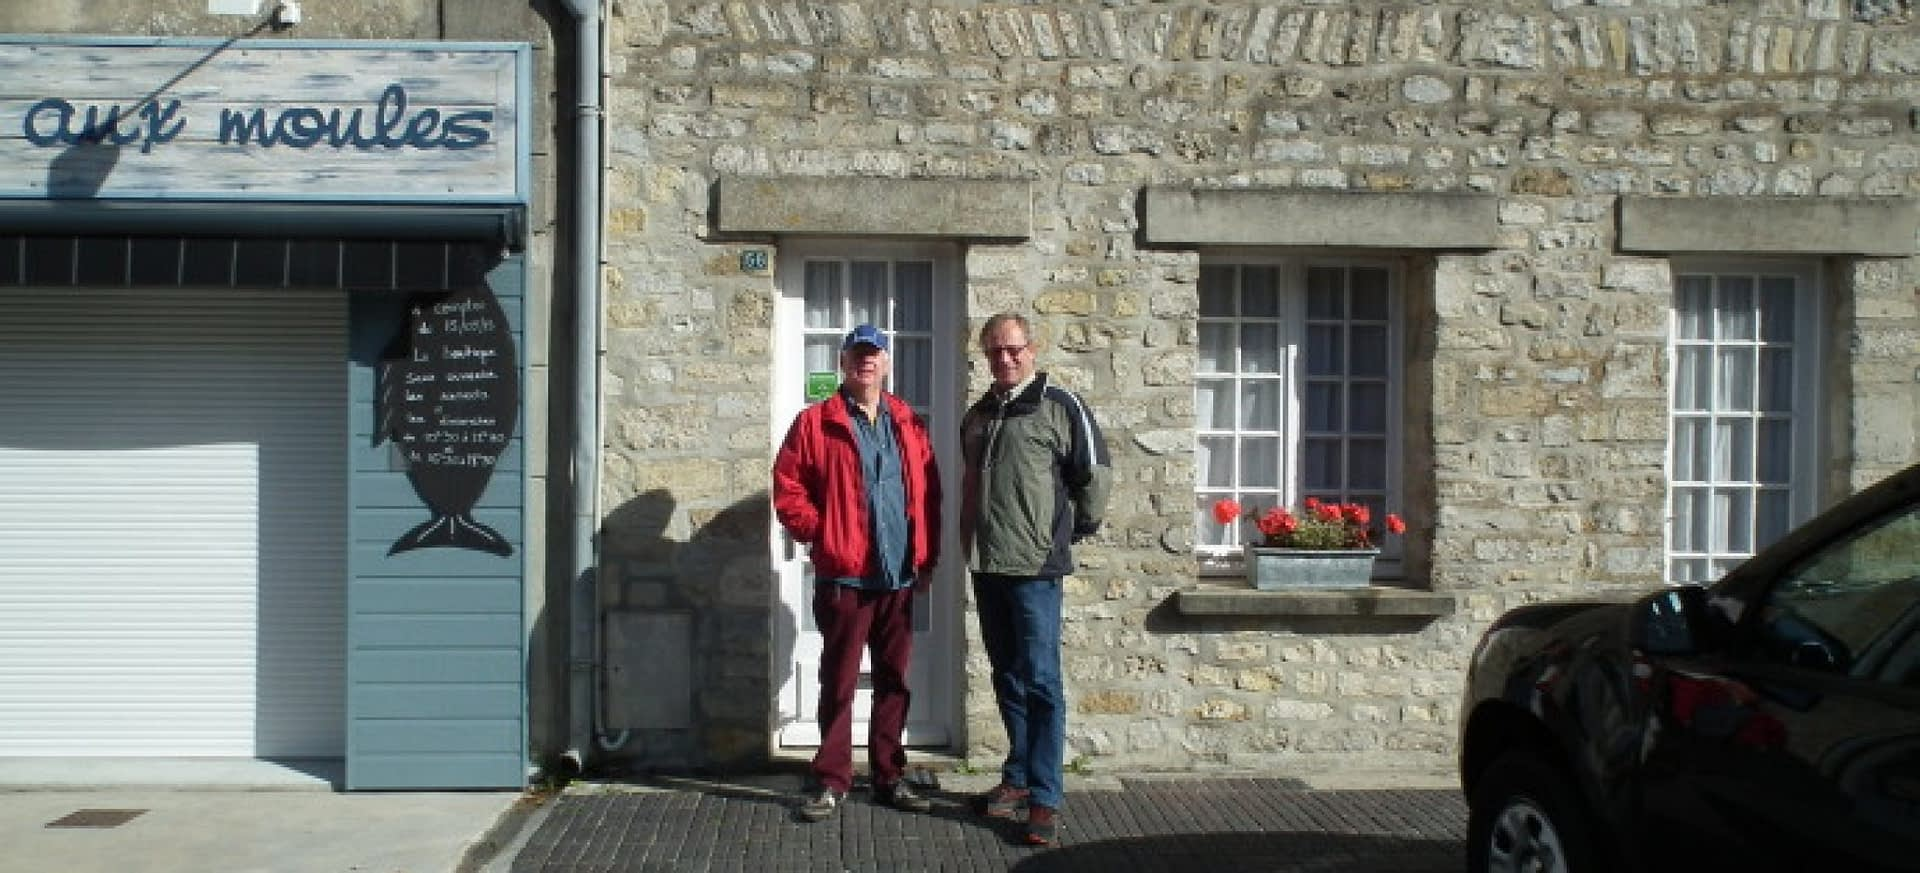 Outside the Band of Brothers House in Ste Marie du Mont